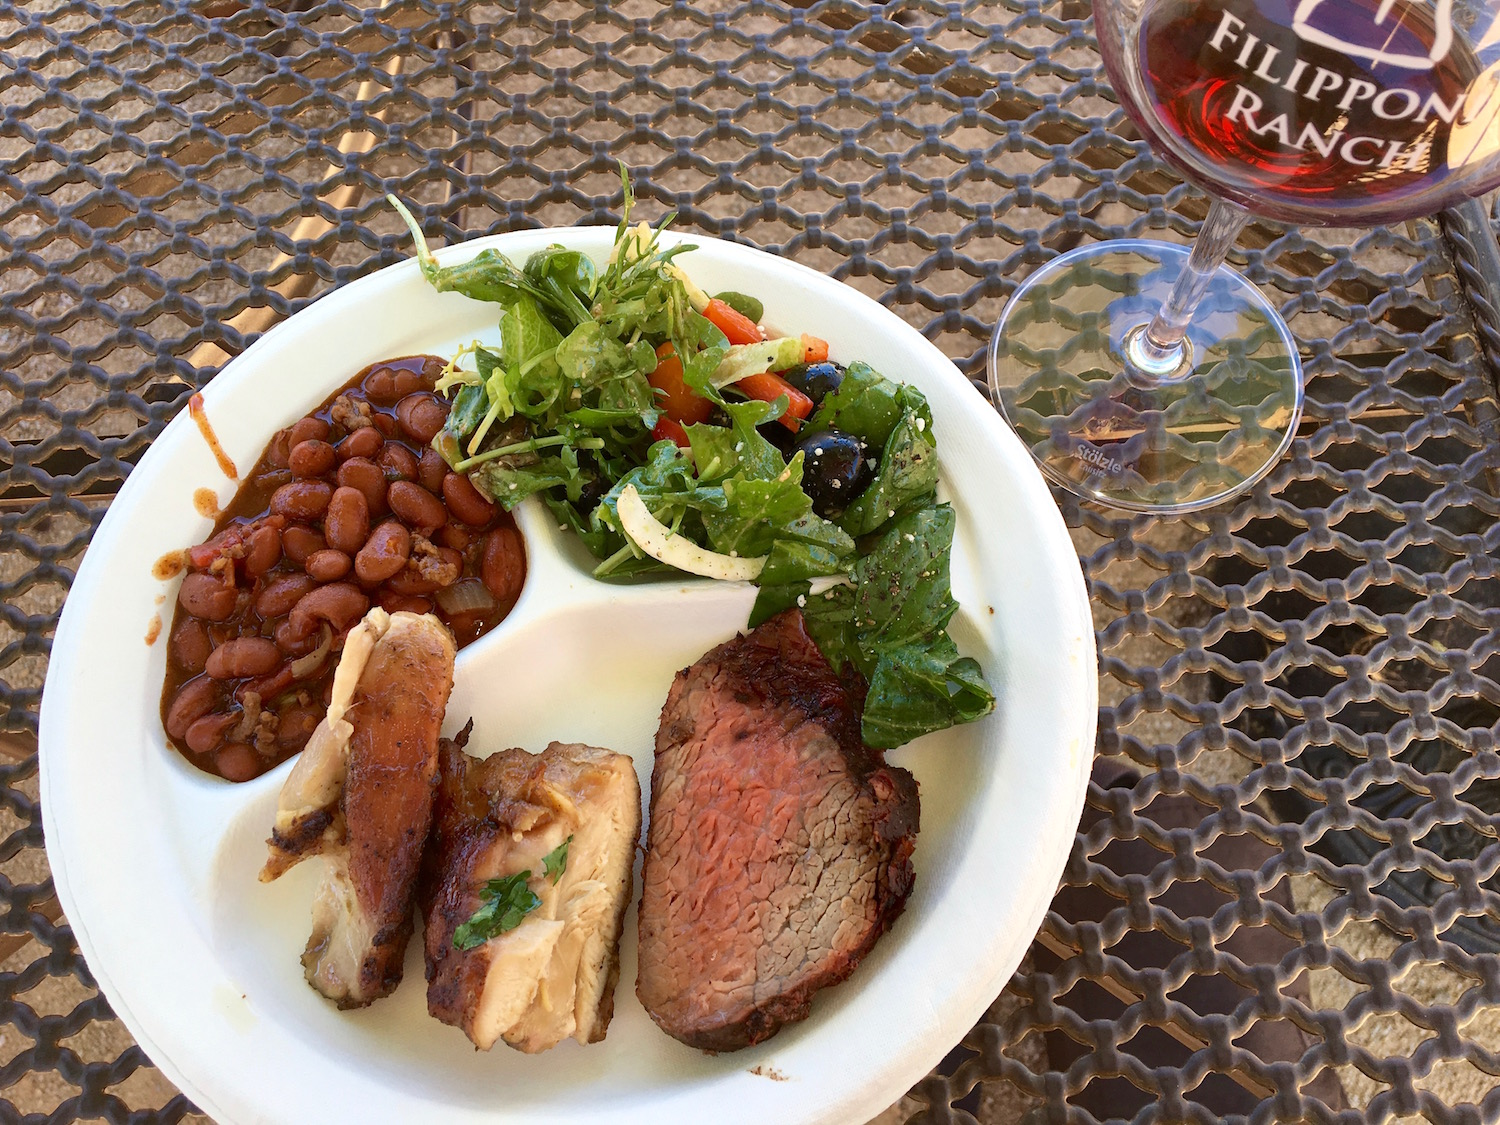 Filipponi Ranch BBQ and wine